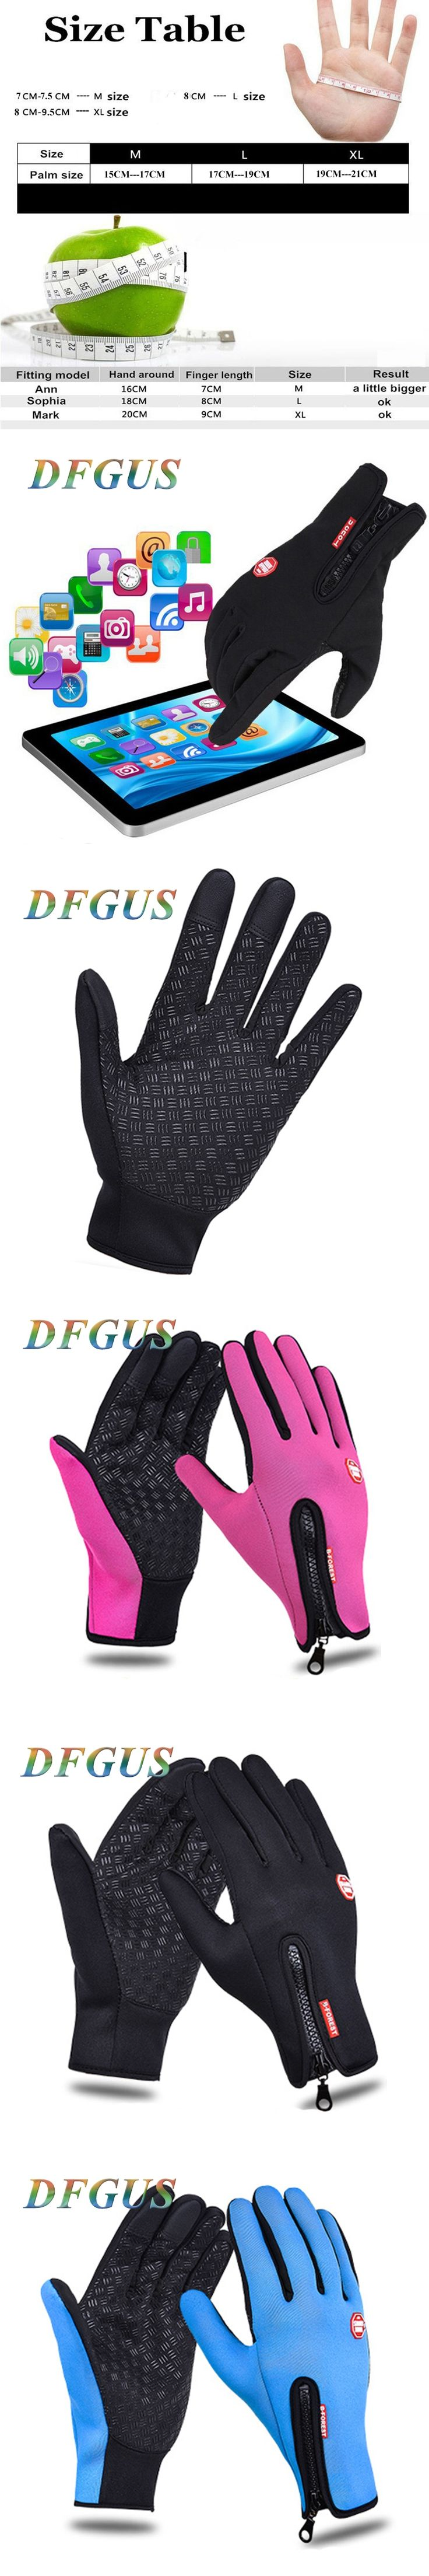 Men's Classic  Leather Gloves Outdoor Sport Driving Touch Screen Winter Gloves Male Military Guantes Tactical Women Gym Gloves